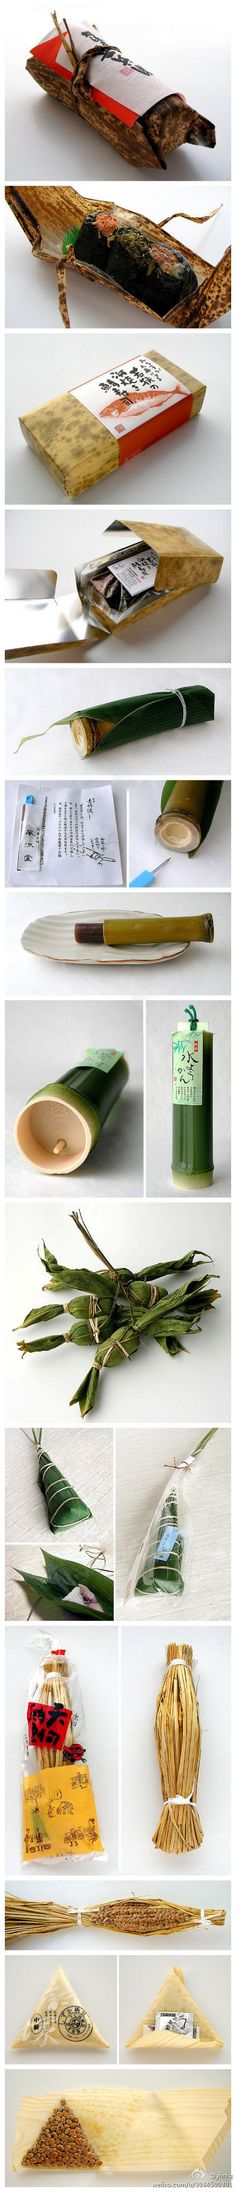 Japanese Packaging Design - traditional material with a modern look